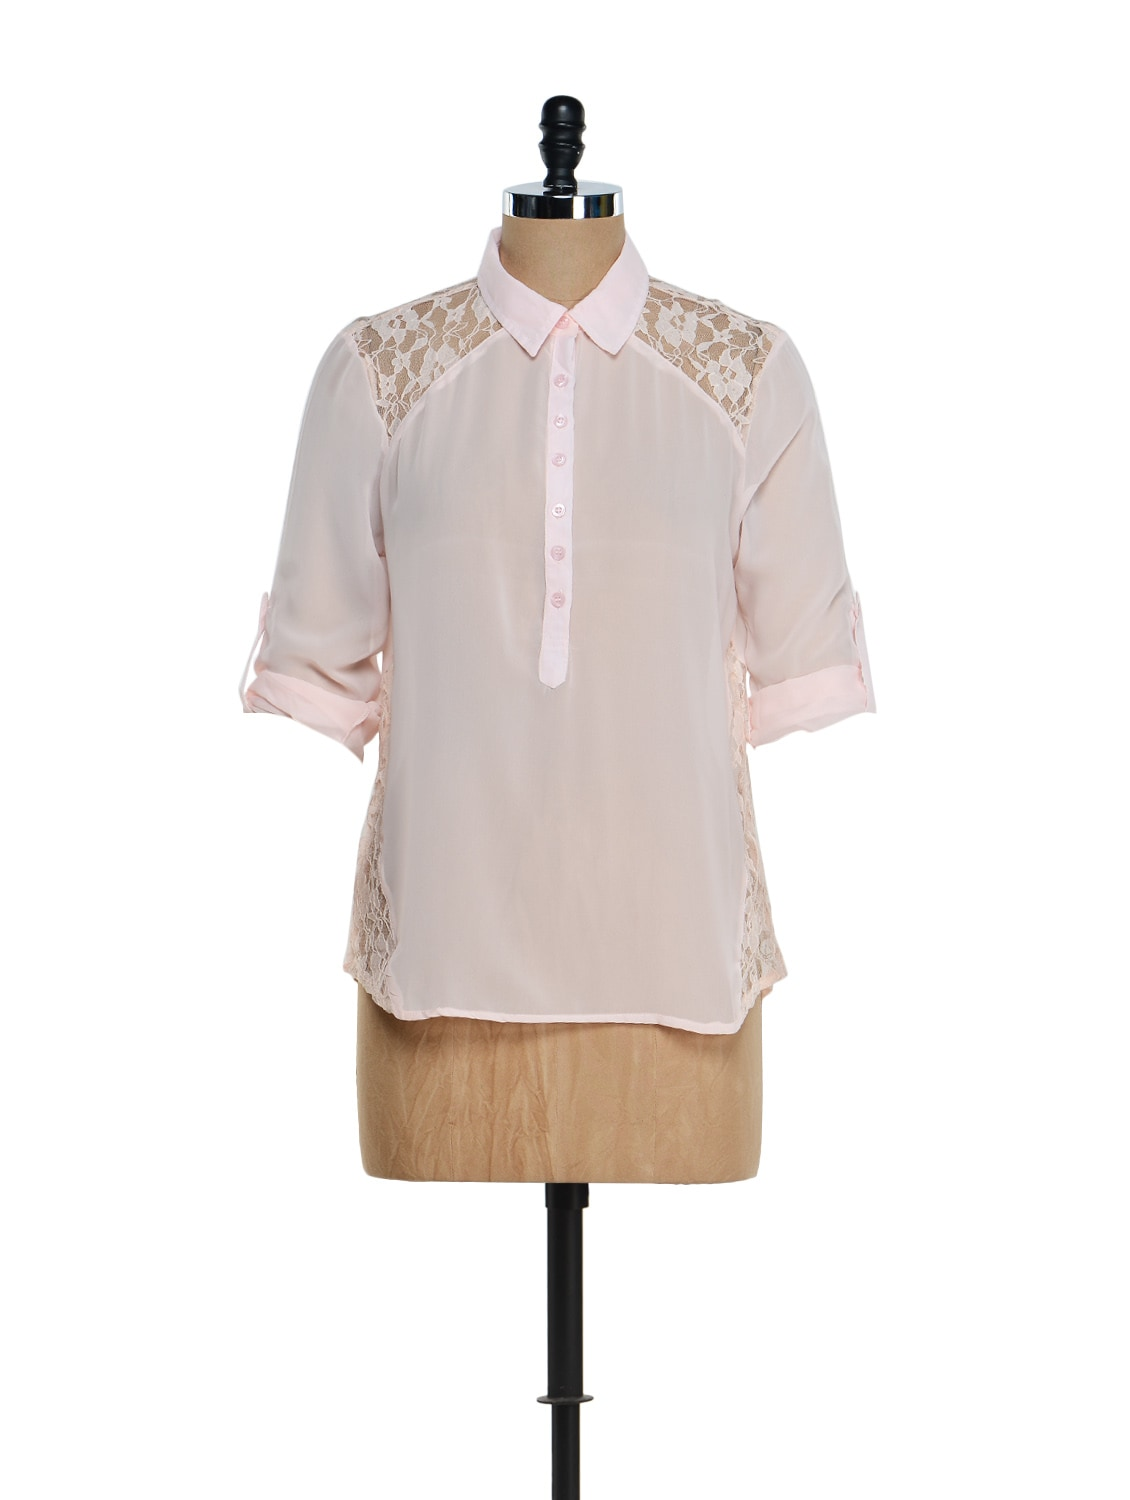 Peach Lace Shirt - Purys